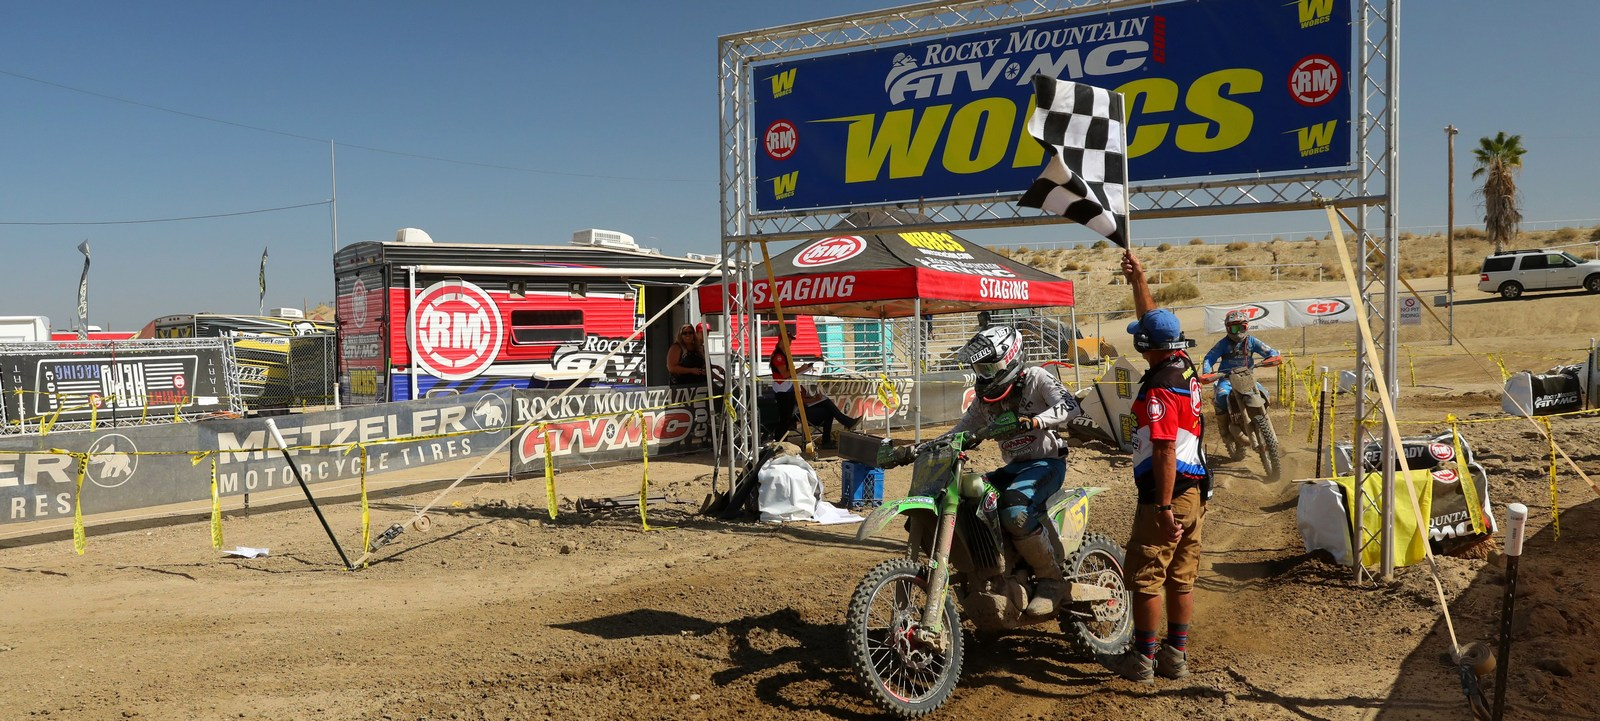 2019-10-zach-bell-finish-bike-worcs-racing